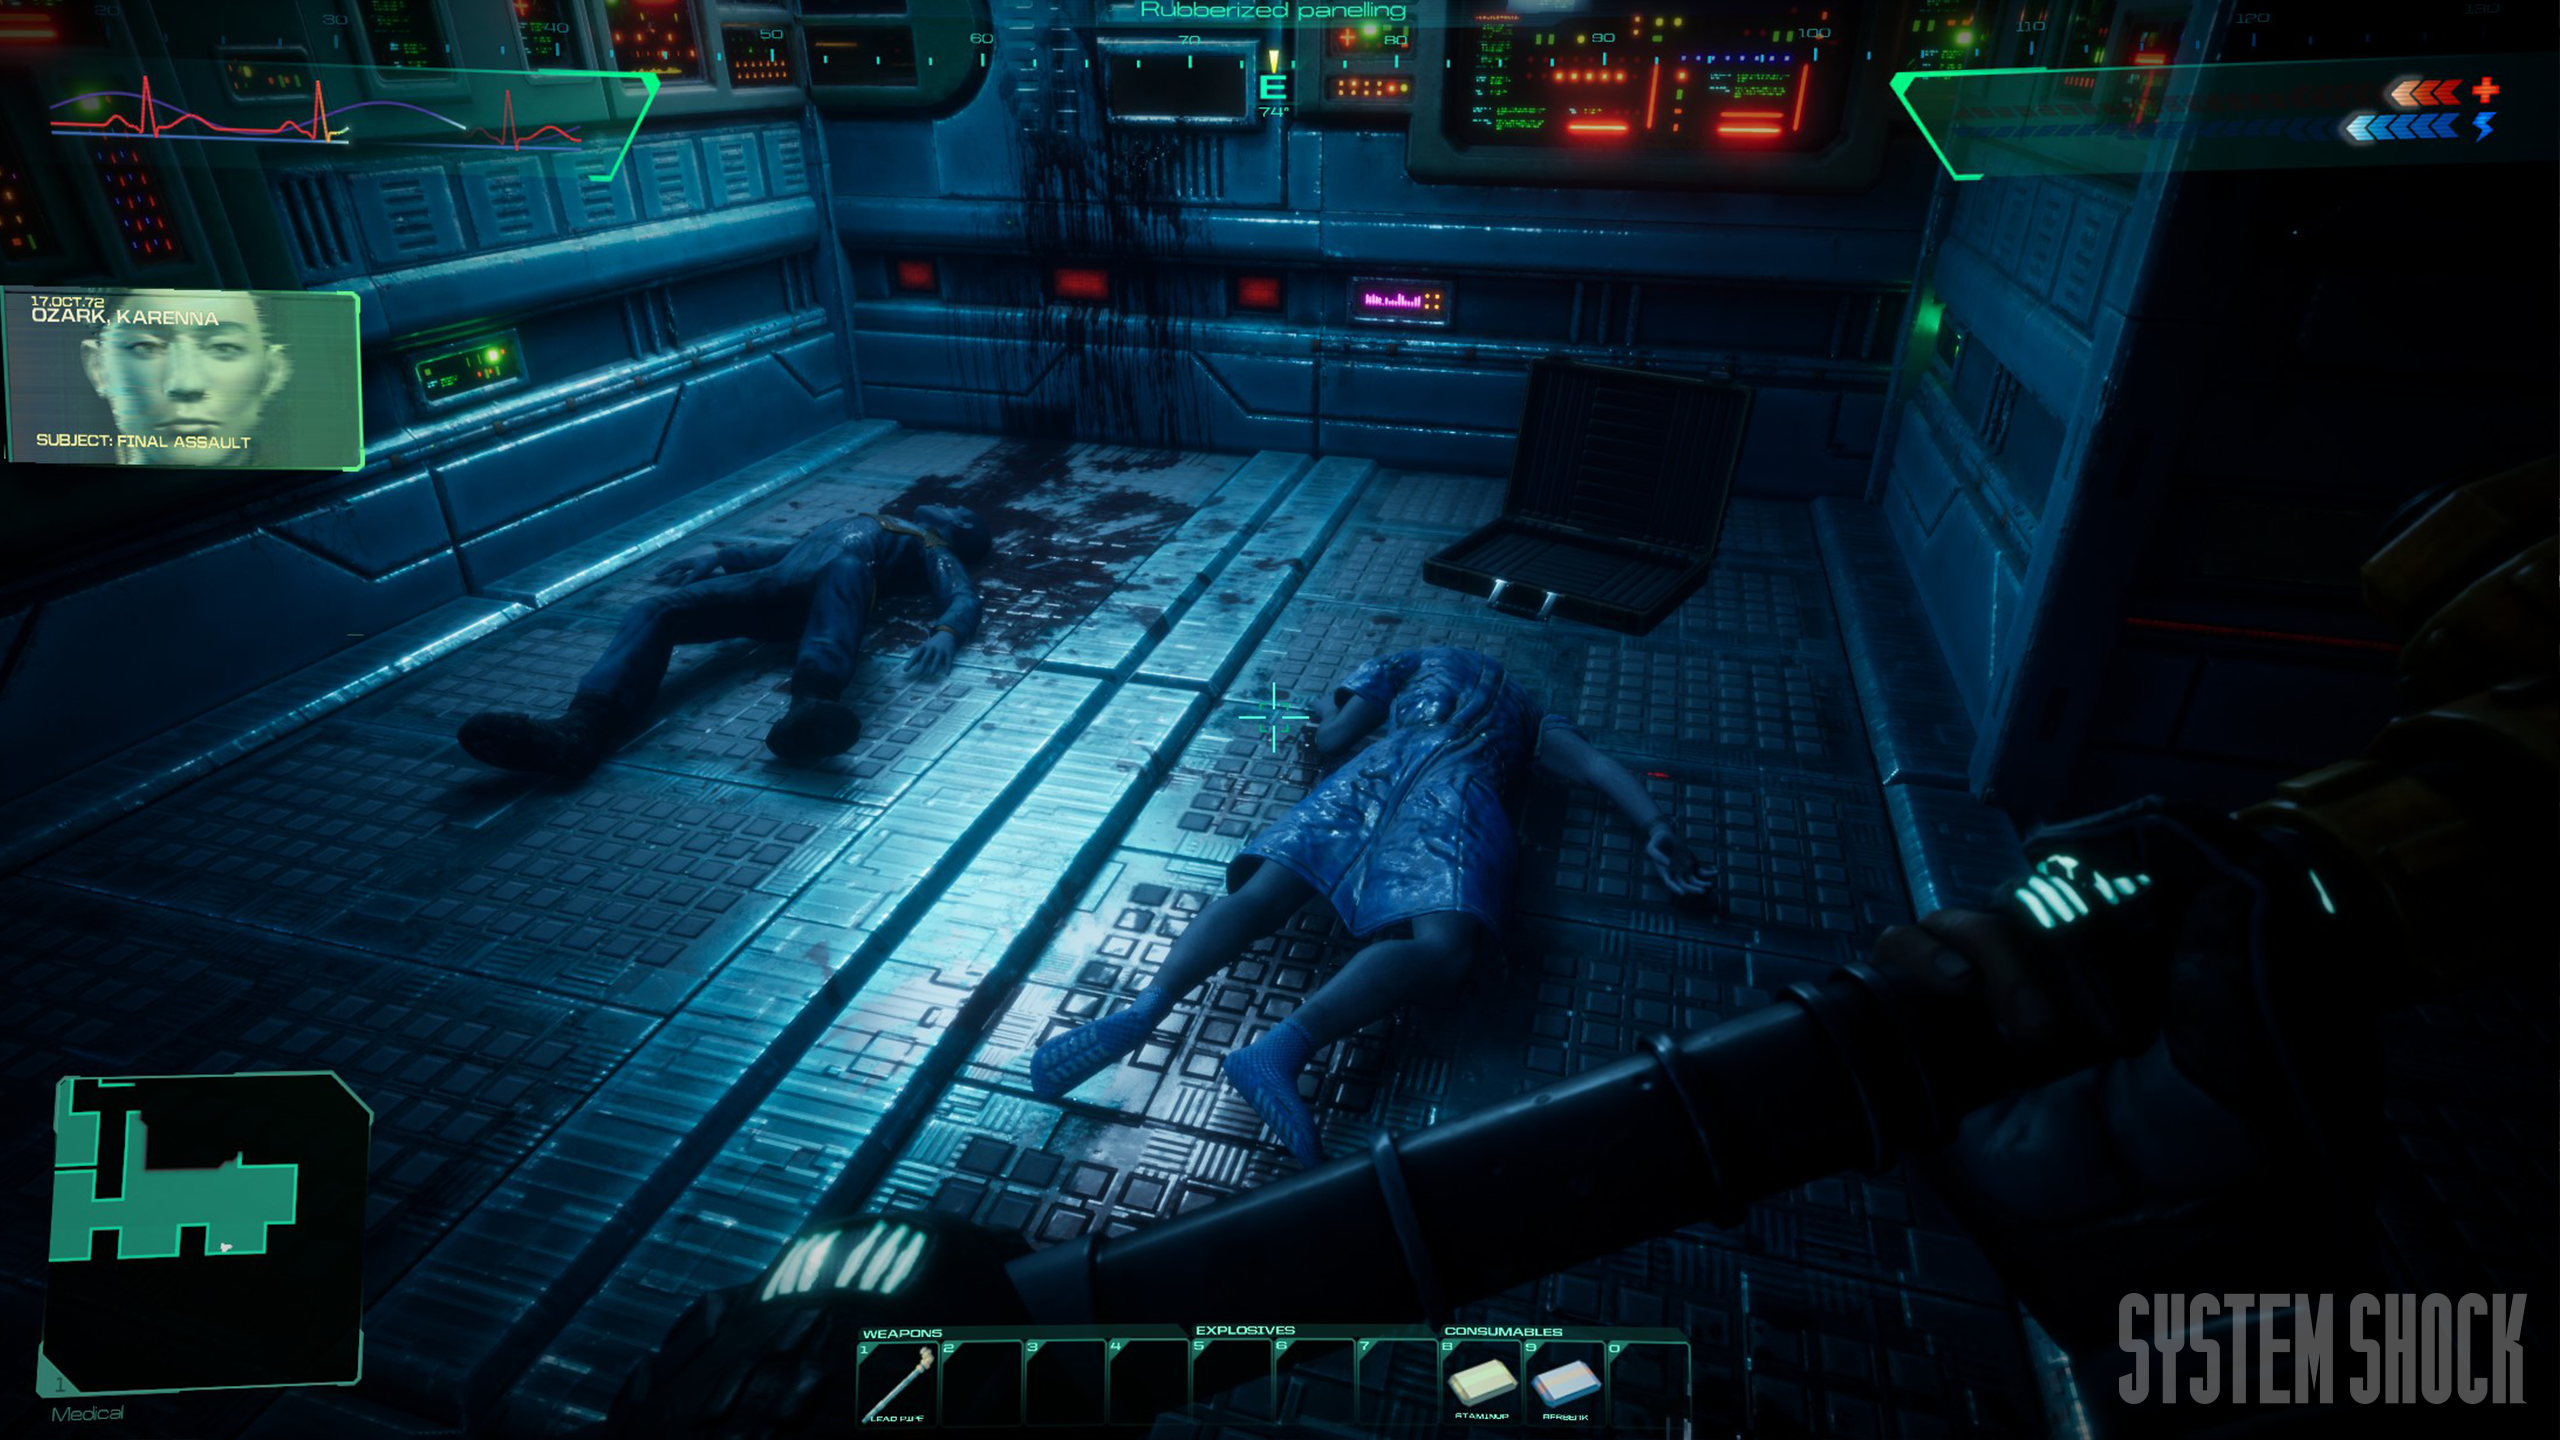 The System Shock remake is looking damn good